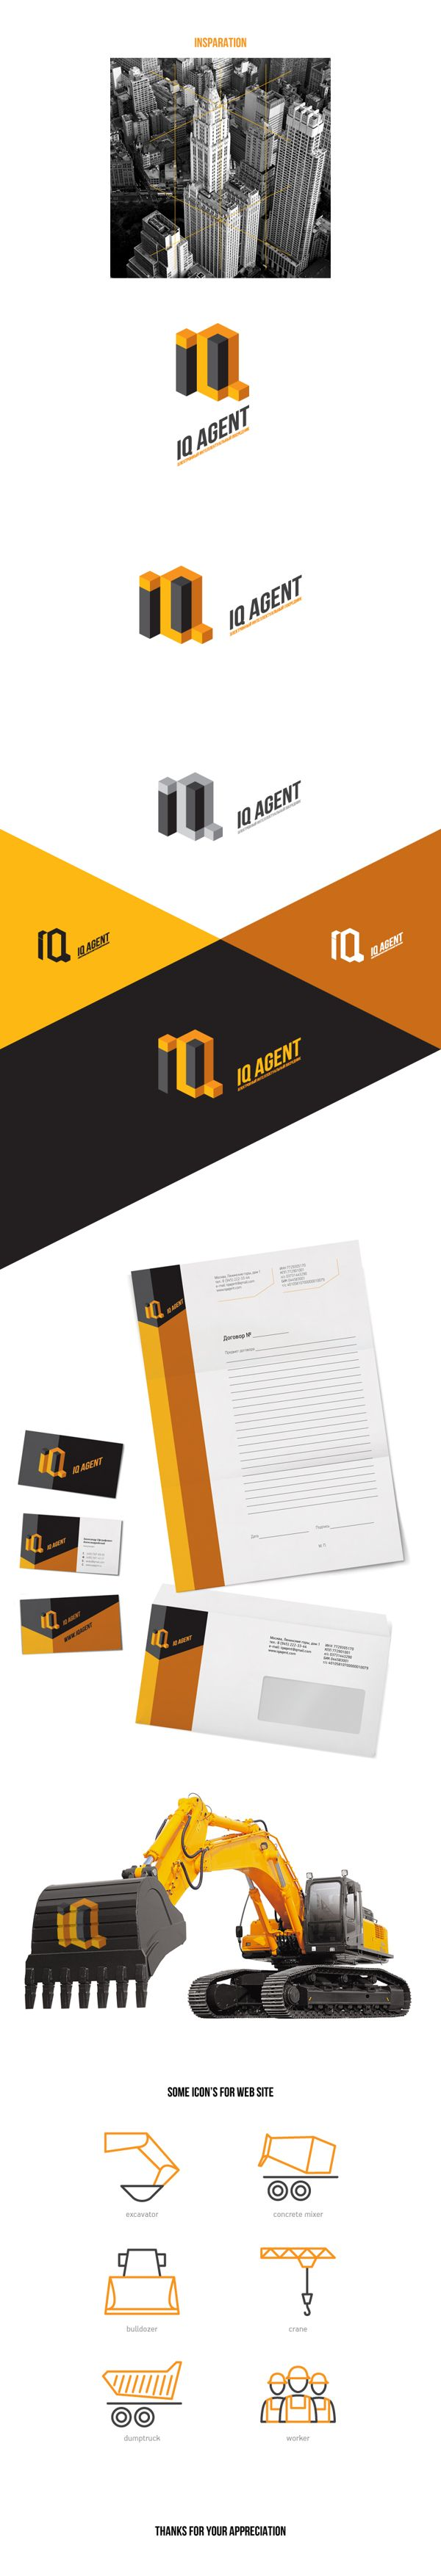 IQ Agent identity | Zdesigner: Paul Glazkov | #stationary #corporate #design #corporatedesign #logo #identity #branding #marketing <<< repinned by an #advertising agency from #Hamburg / #Germany - www.BlickeDeeler.de | Follow us on www.facebook.com/BlickeDeeler